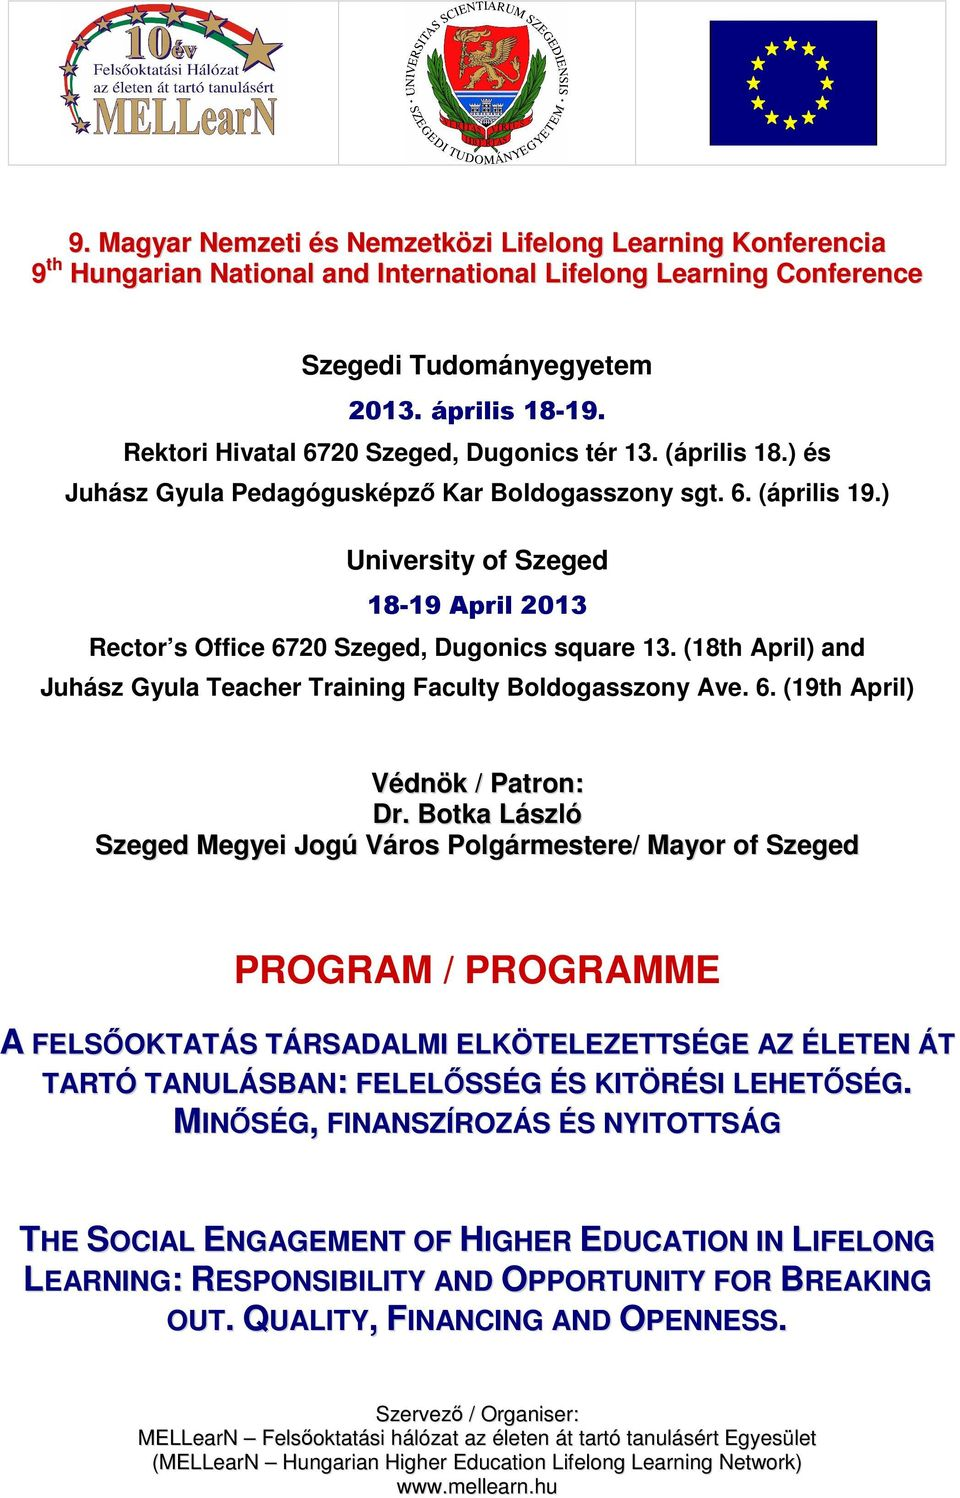 ) University of Szeged 18-19 April 2013 Rector s Office 6720 Szeged, Dugonics square 13. (18th April) and Juhász Gyula Teacher Training Faculty Boldogasszony Ave. 6. (19th April) Védnök / Patron: Dr.